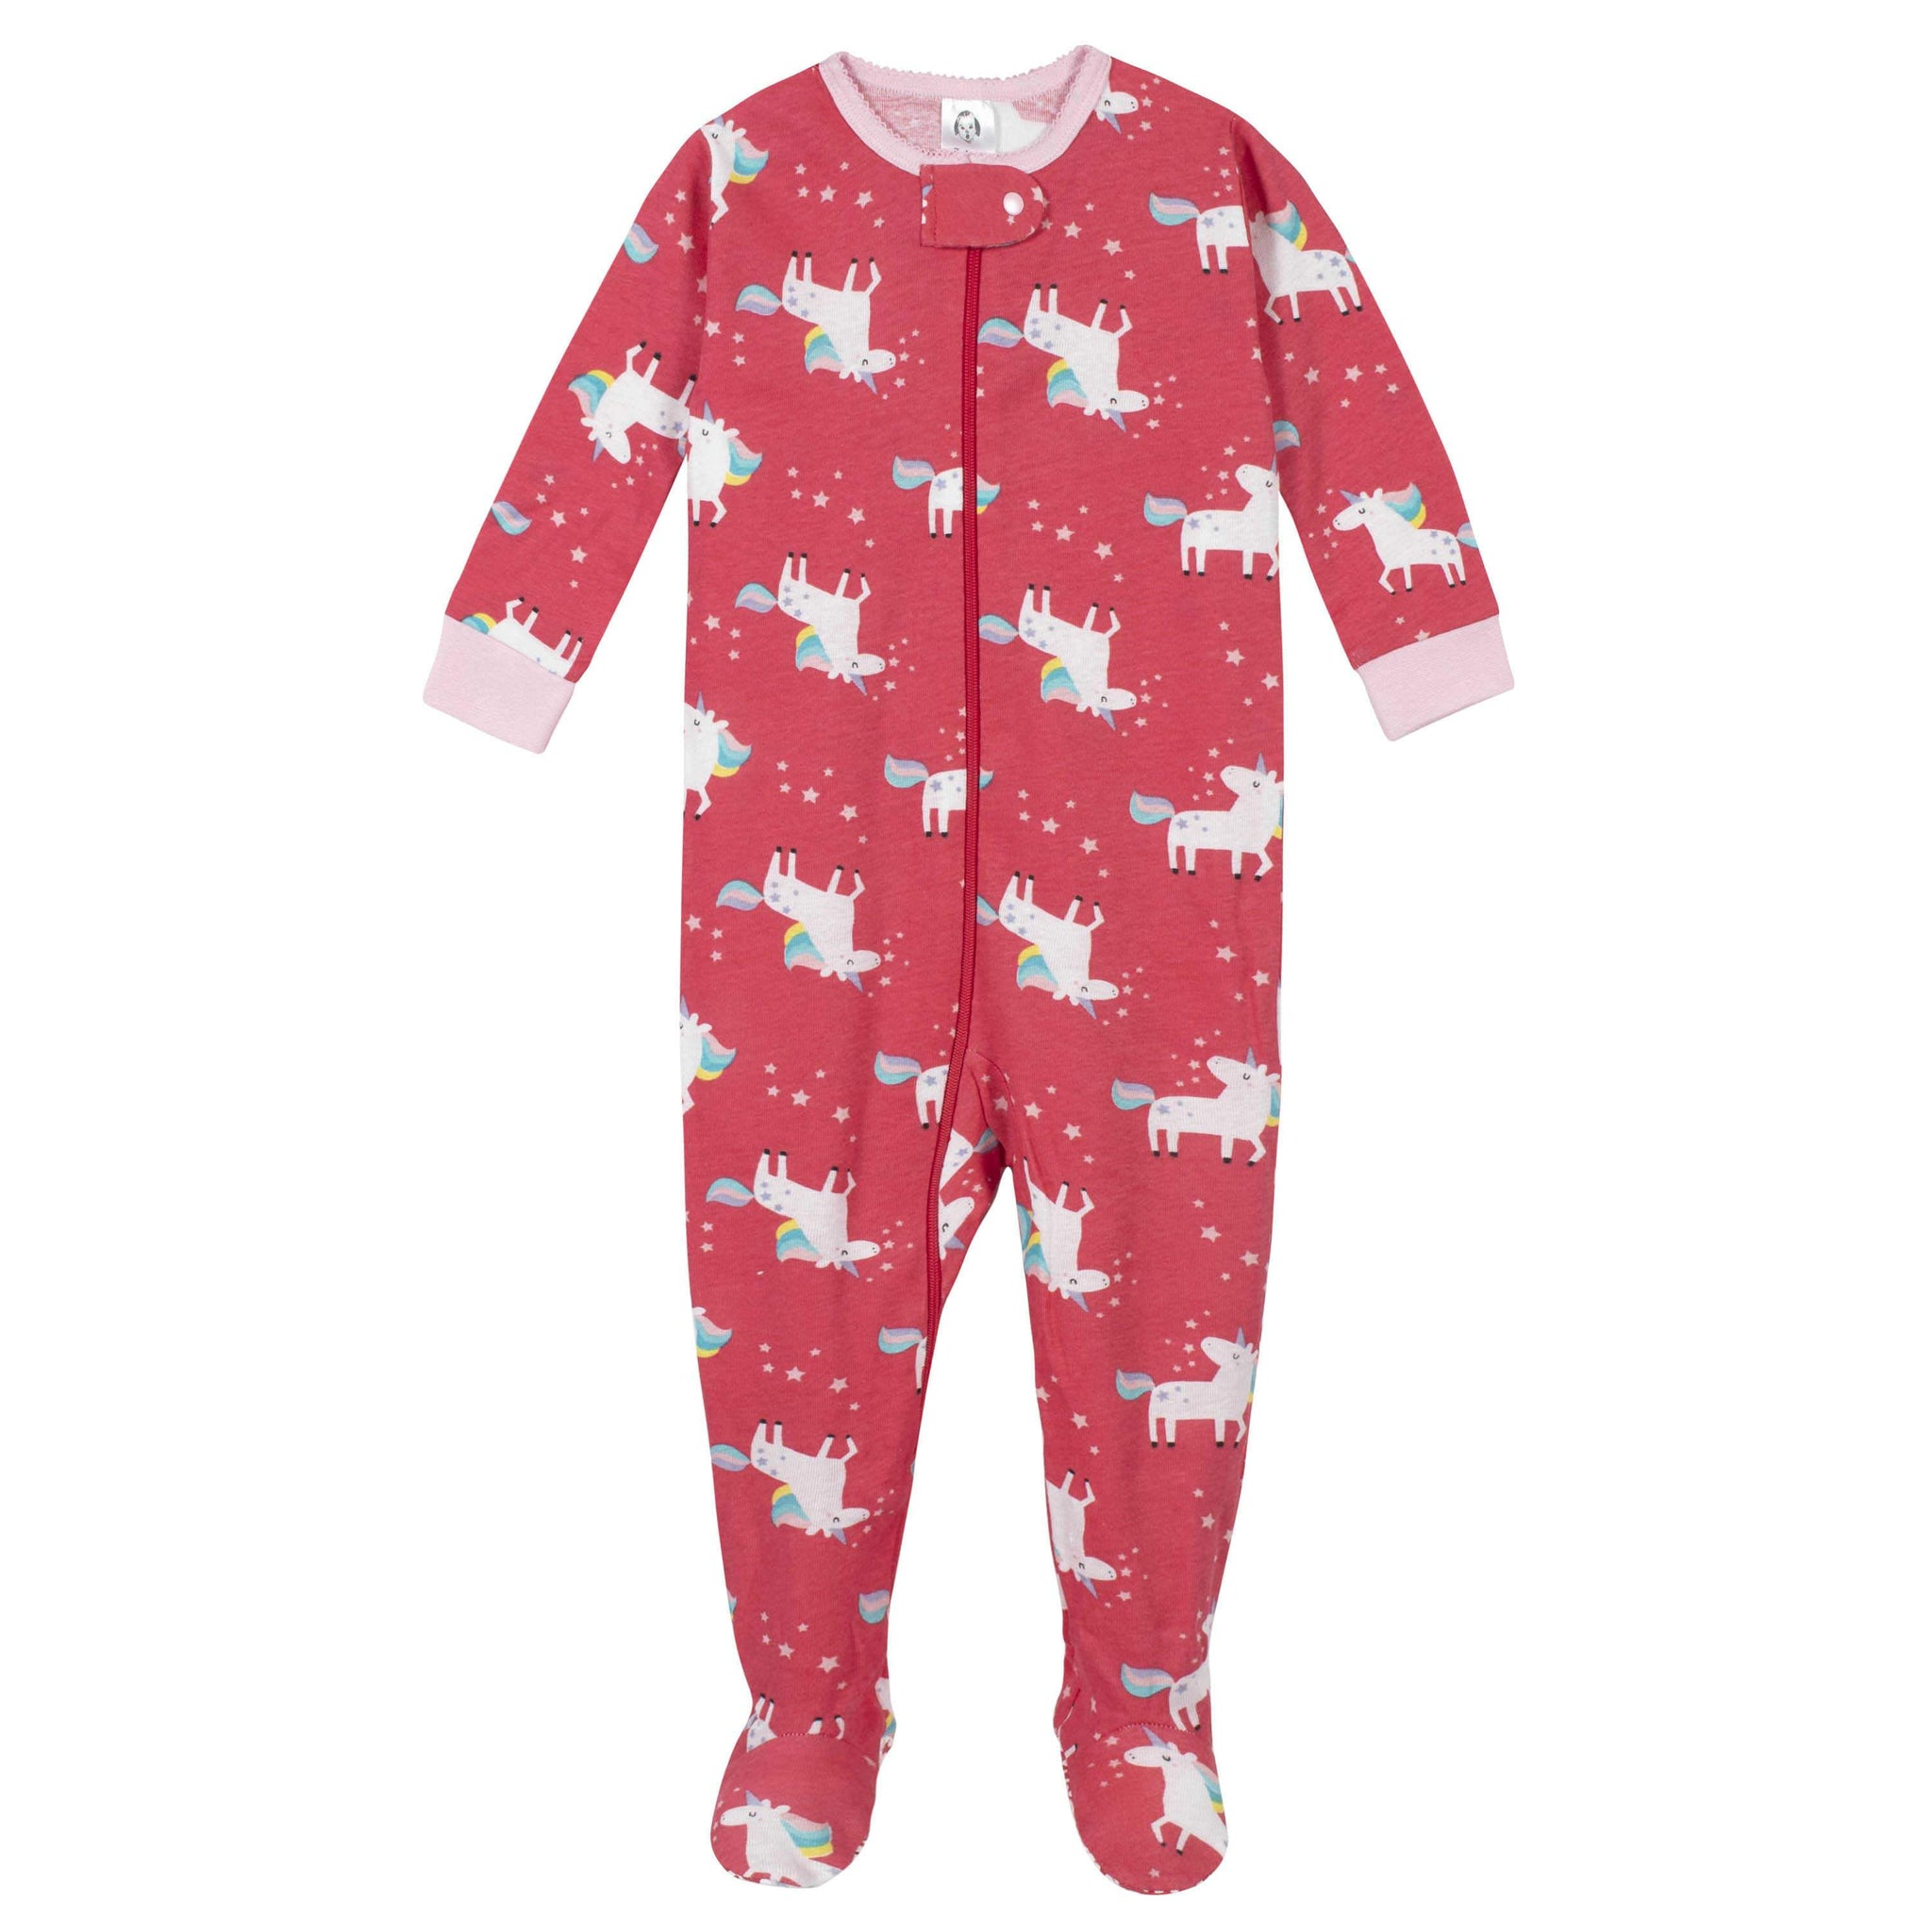 2-Pack Girls Unicorn Footed Pajamas